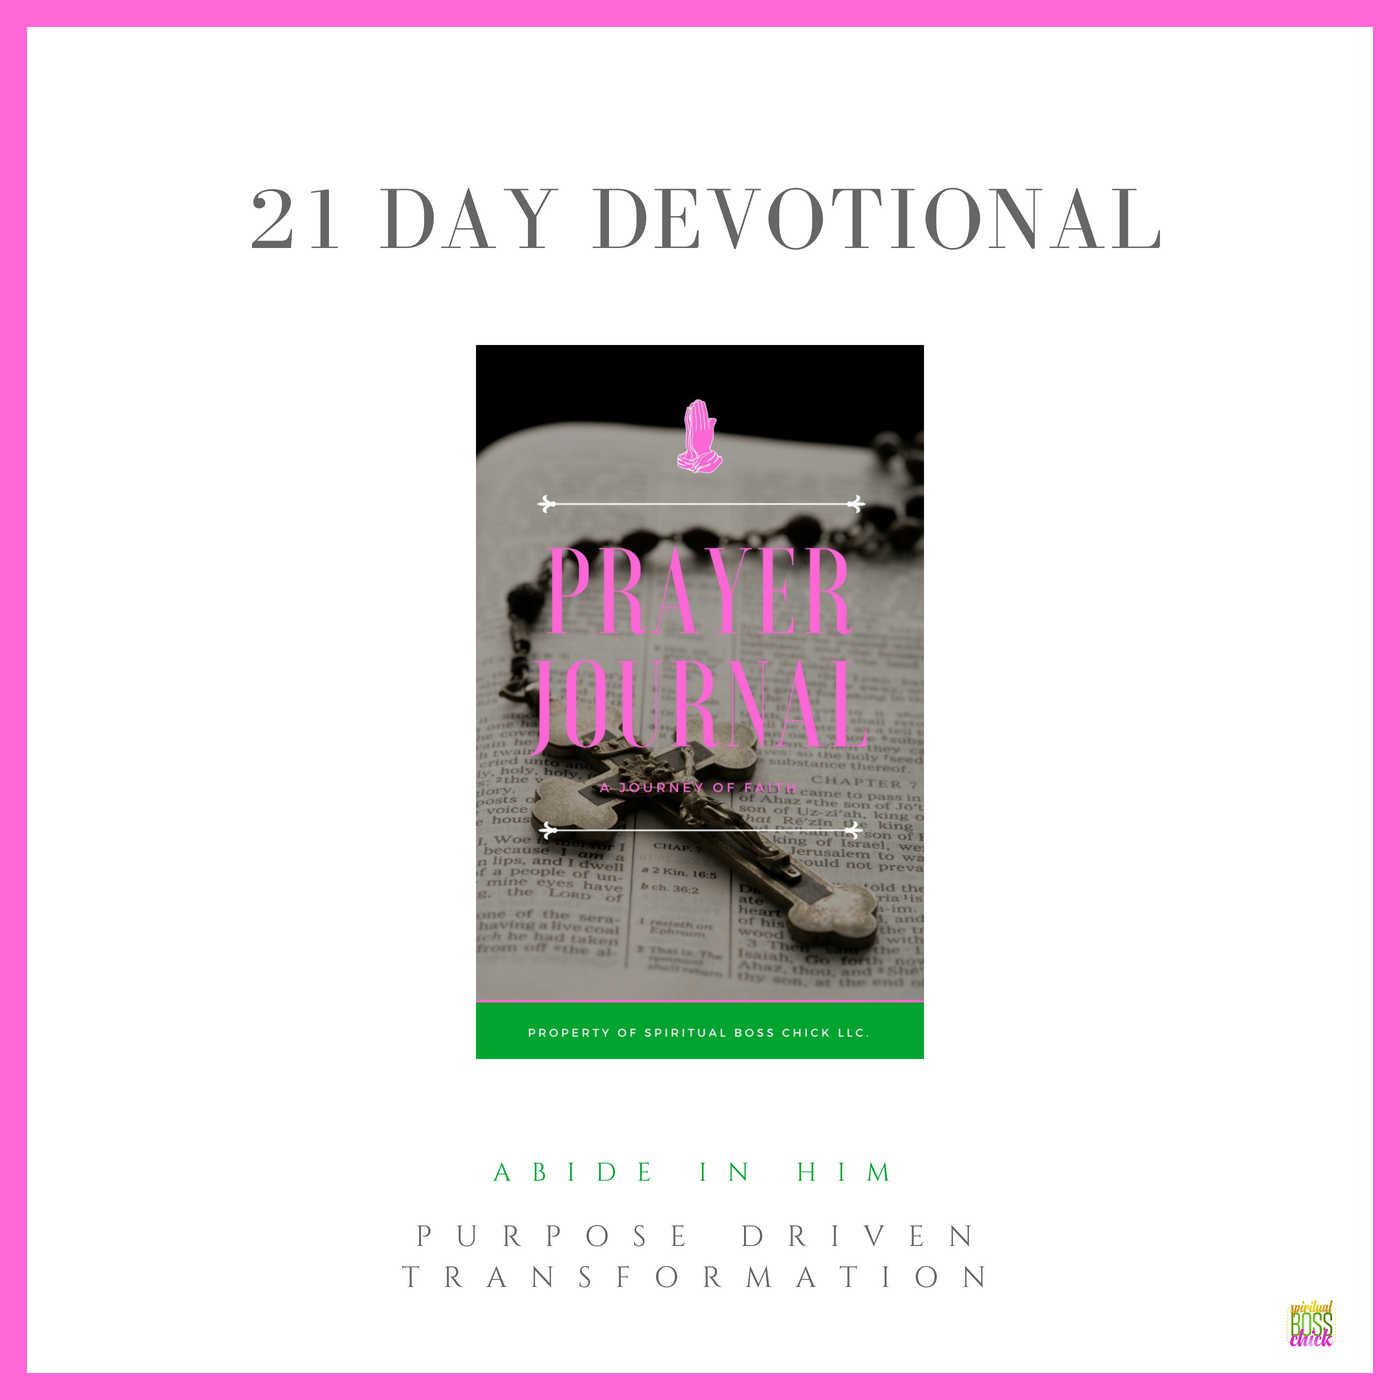 21 Day Devotional.jpg